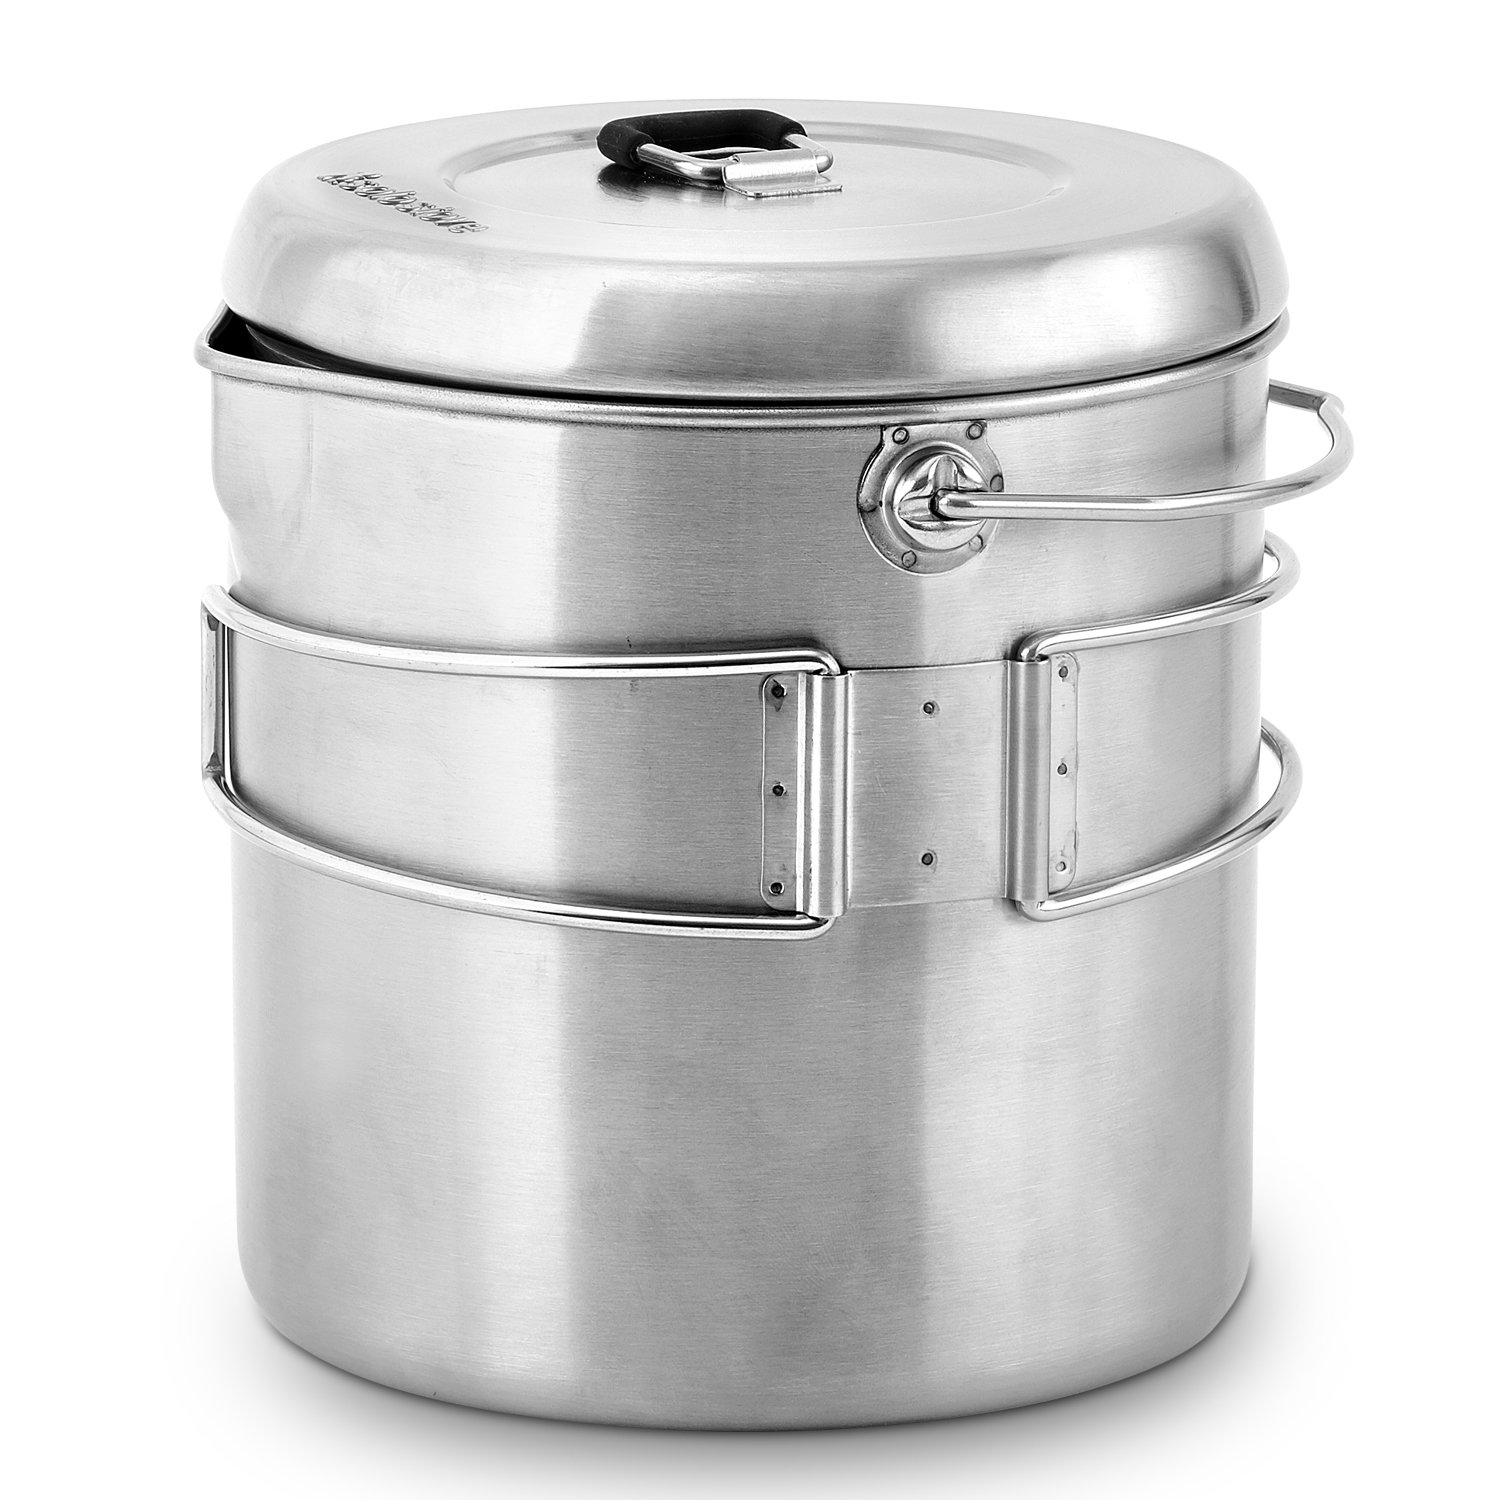 Solo Stove Pot 1800: Stainless Steel Companion Pot for Titan. Great for Backpacking, Camping, Survival